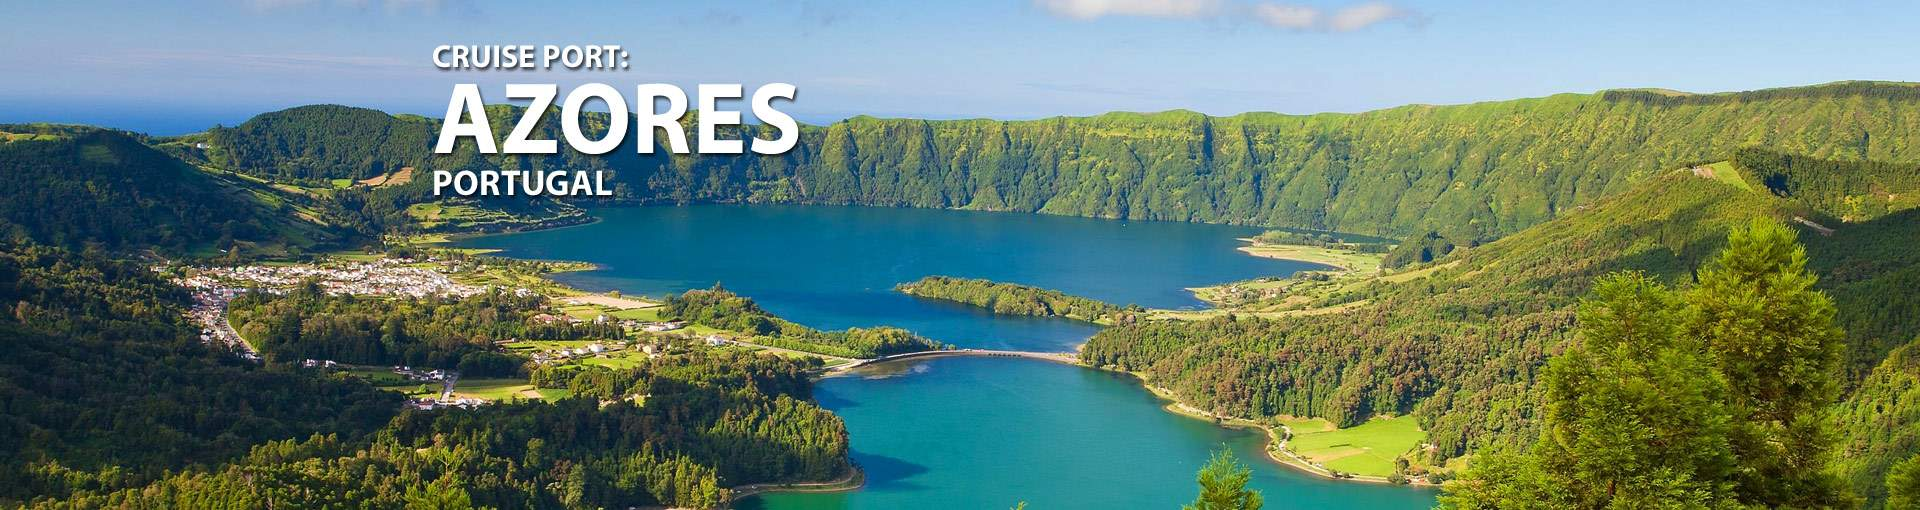 Cruises to Azores Islands, Portugal